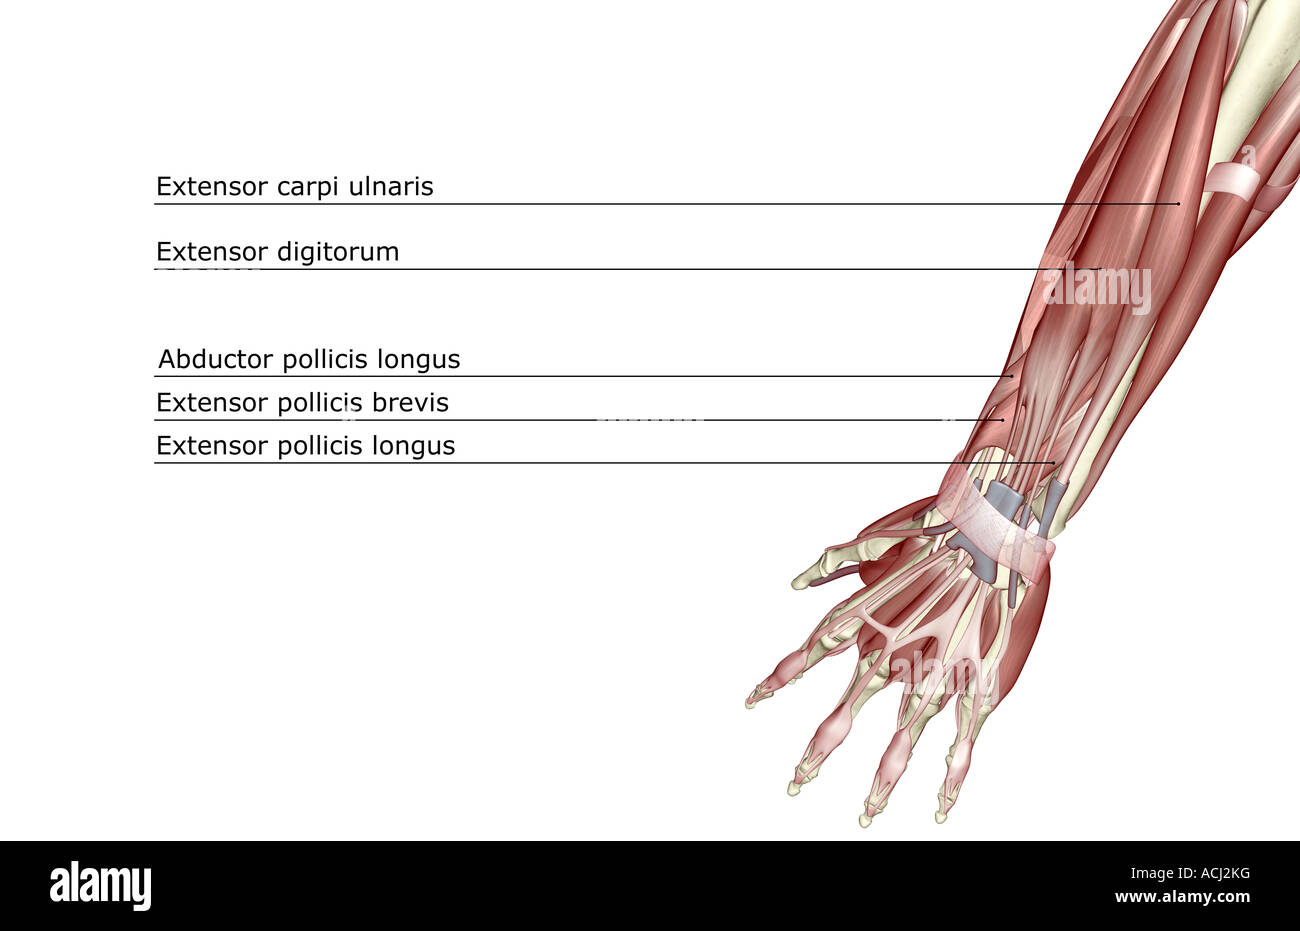 Tendon Arm Stockfotos & Tendon Arm Bilder - Seite 3 - Alamy